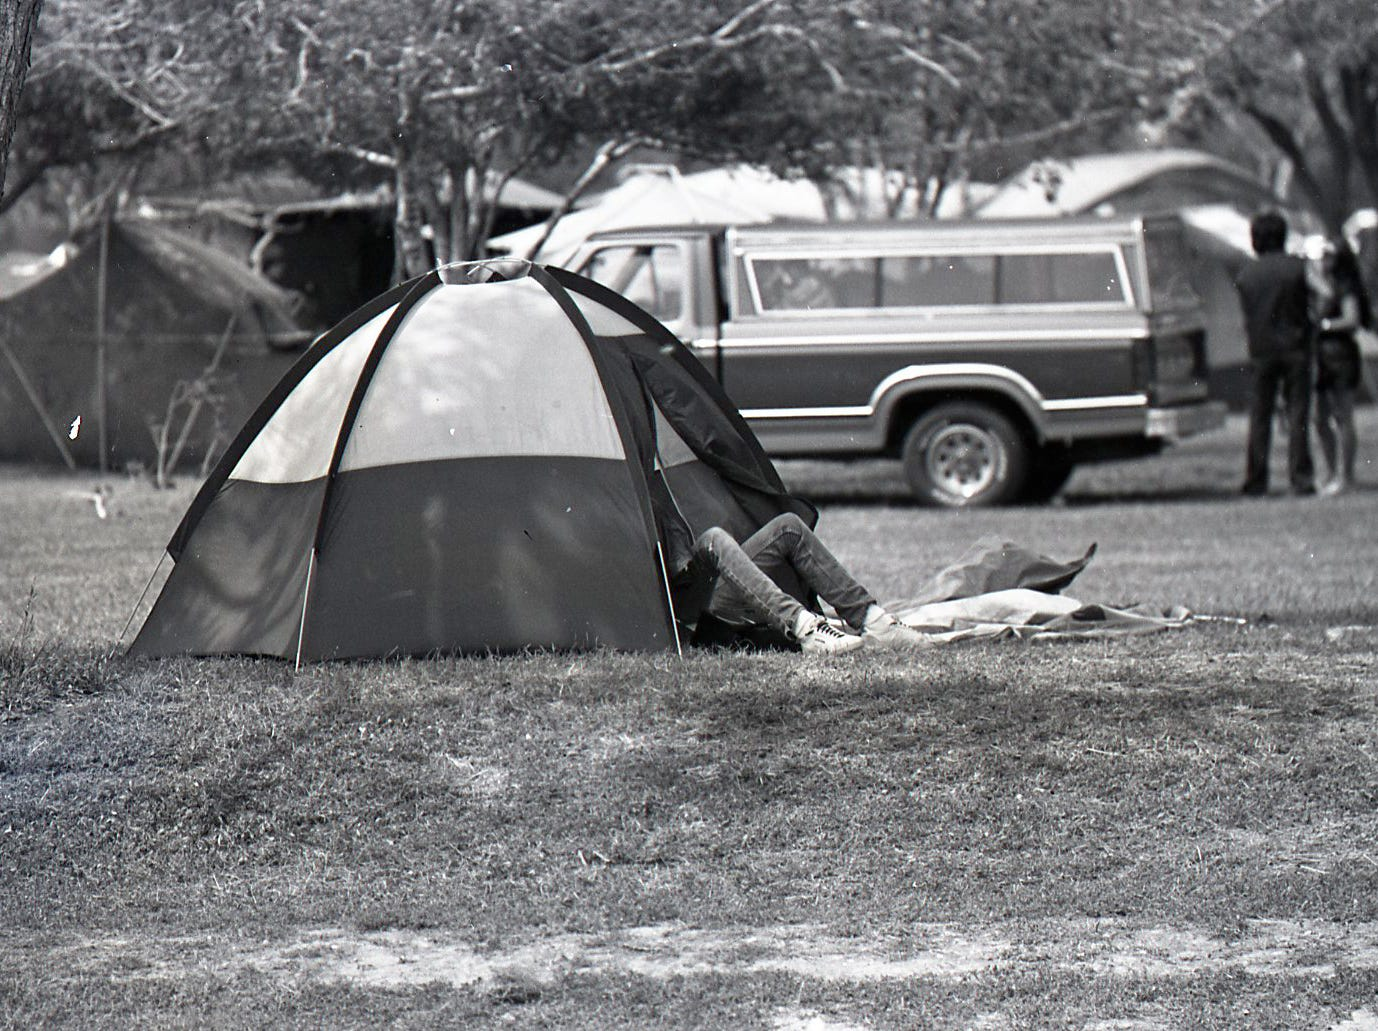 A camper rests in his tent at Nueces River Park in Corpus Christi on Easter Sunday, April 19, 1987.